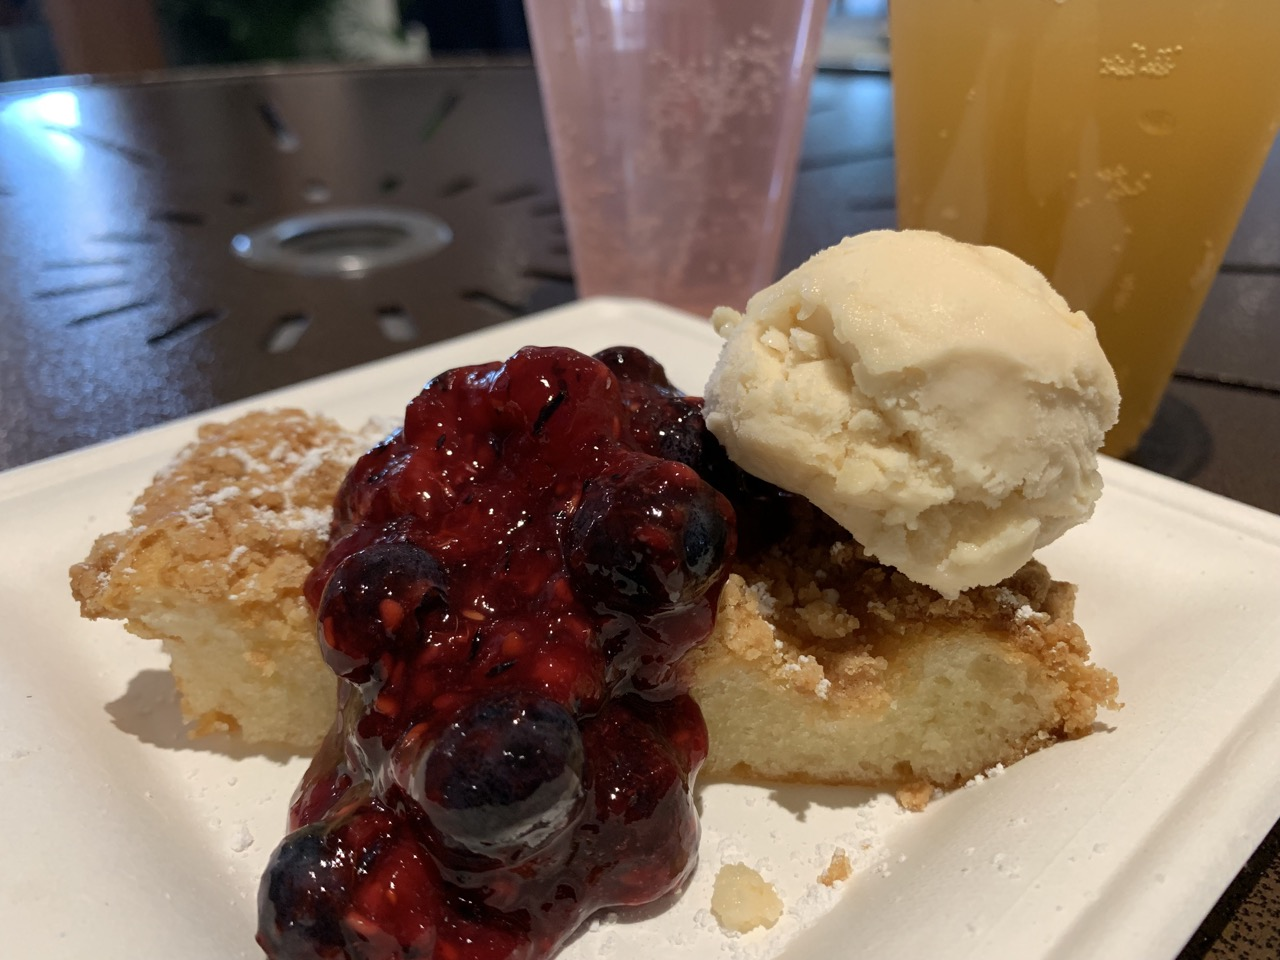 disney world trip report early summer 2019 day four 41 food.jpeg